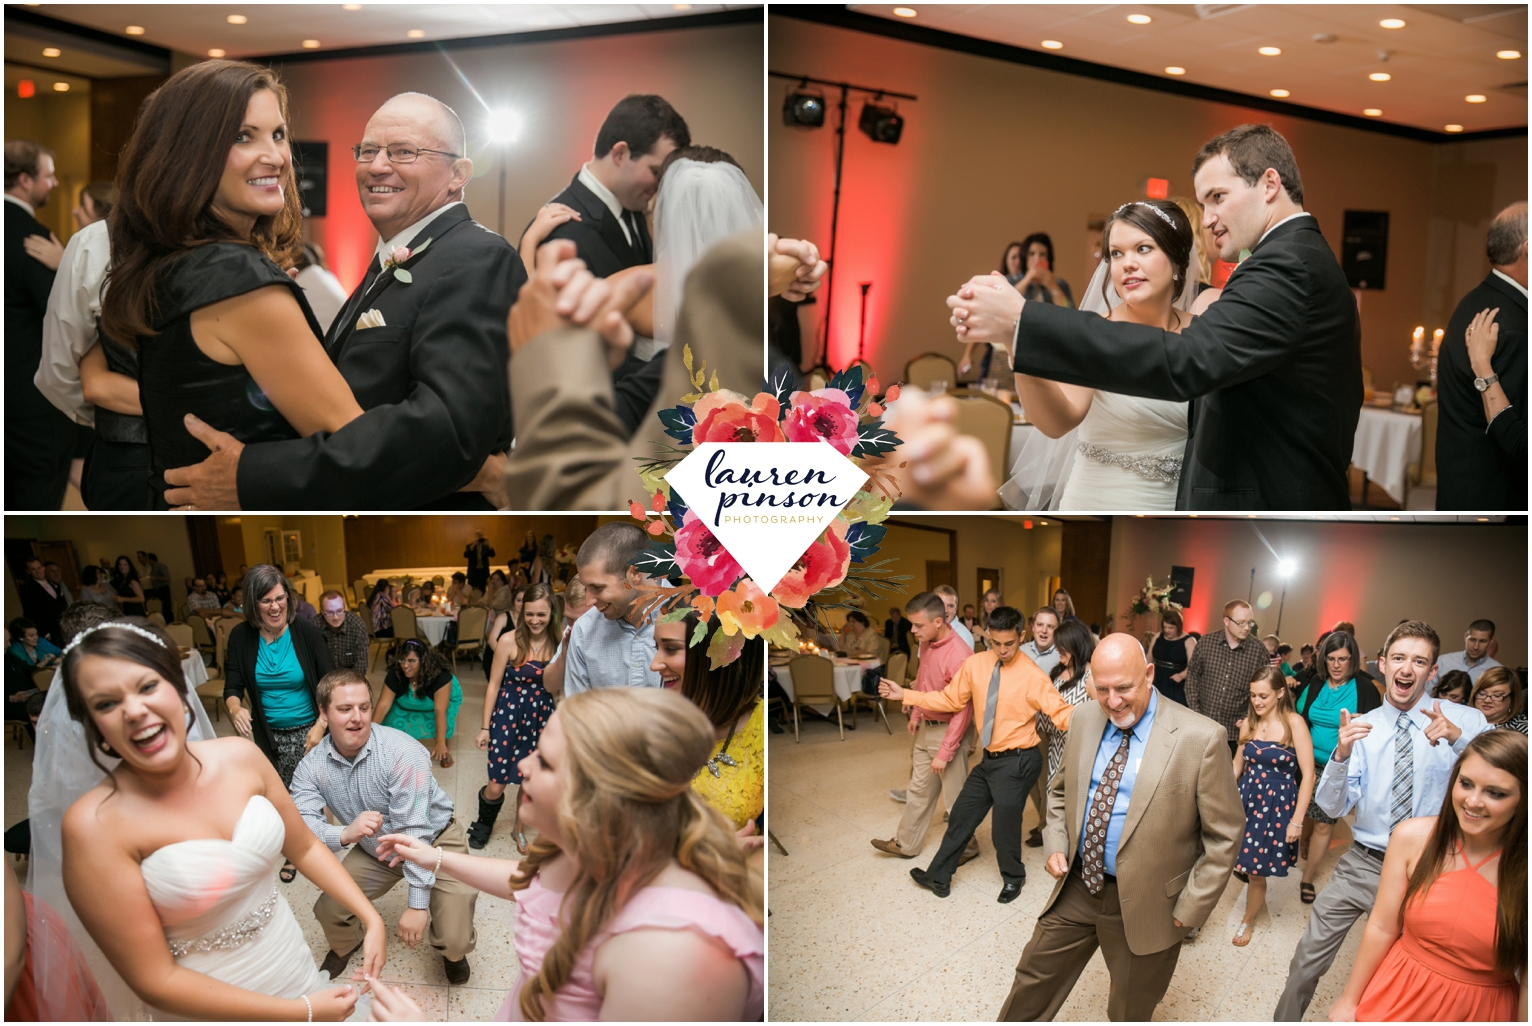 wichita-falls-wedding-photographer-kemp-center-at-the-forum-photography-two-clever-chicks_1077.jpg